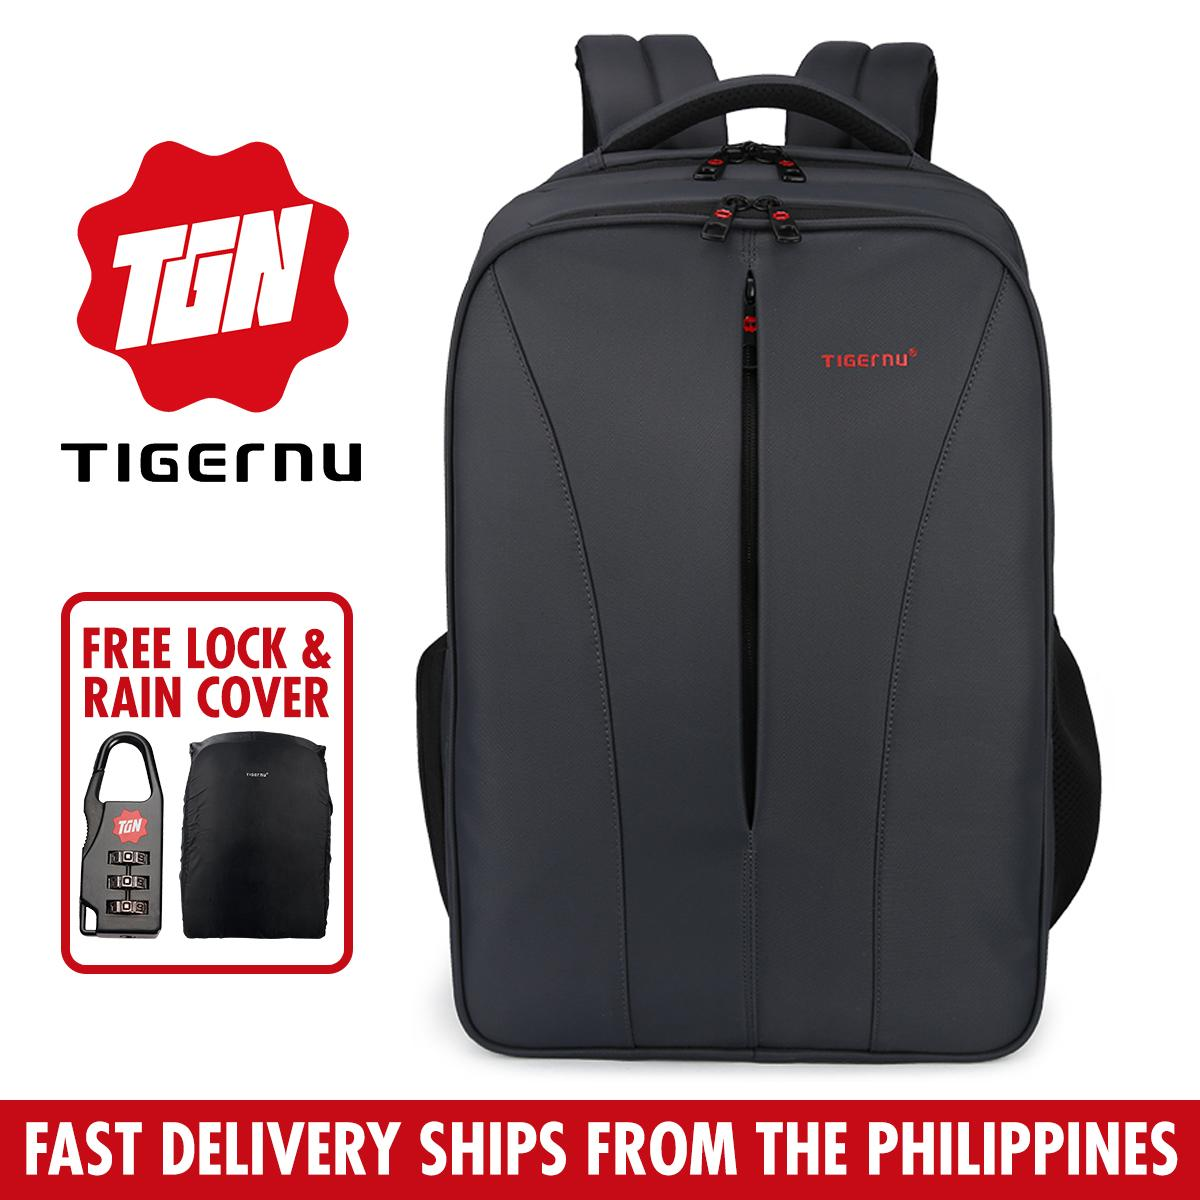 Tigernu T-B3220 Anti-Theft Water Resistant Mens Business Travel Laptop Bag Backpack For 10.1 To 15.6 Laptop By Tigernu Ph.